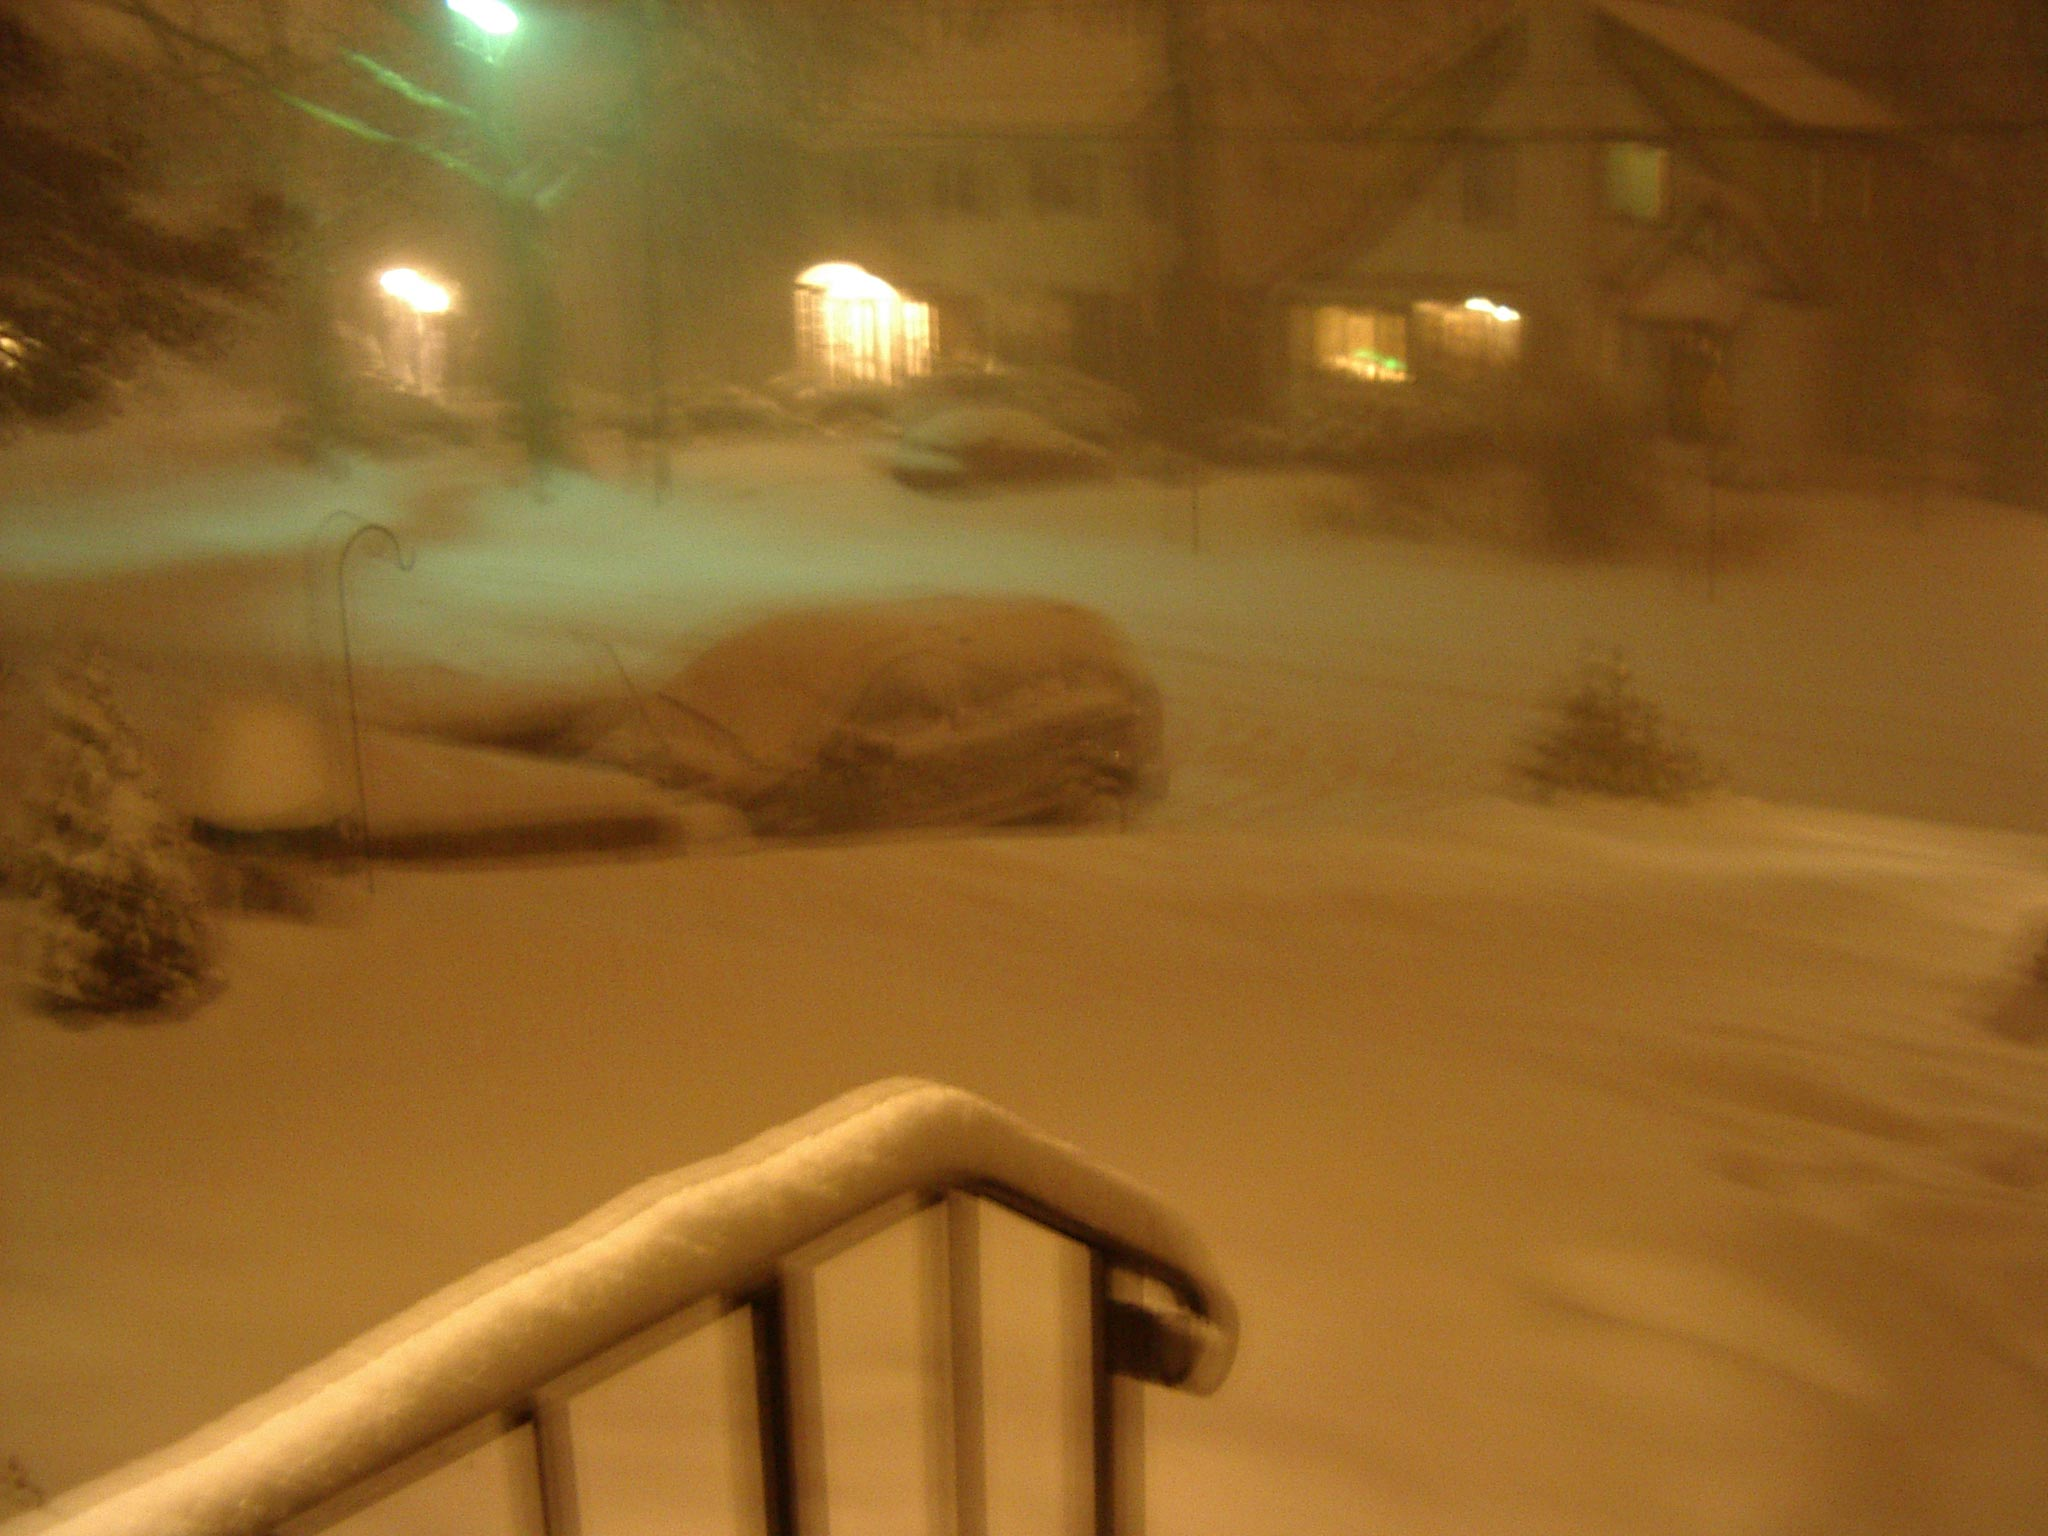 A week before China, a parting snowstorm. West Orange, NJ, January 23, 2005.